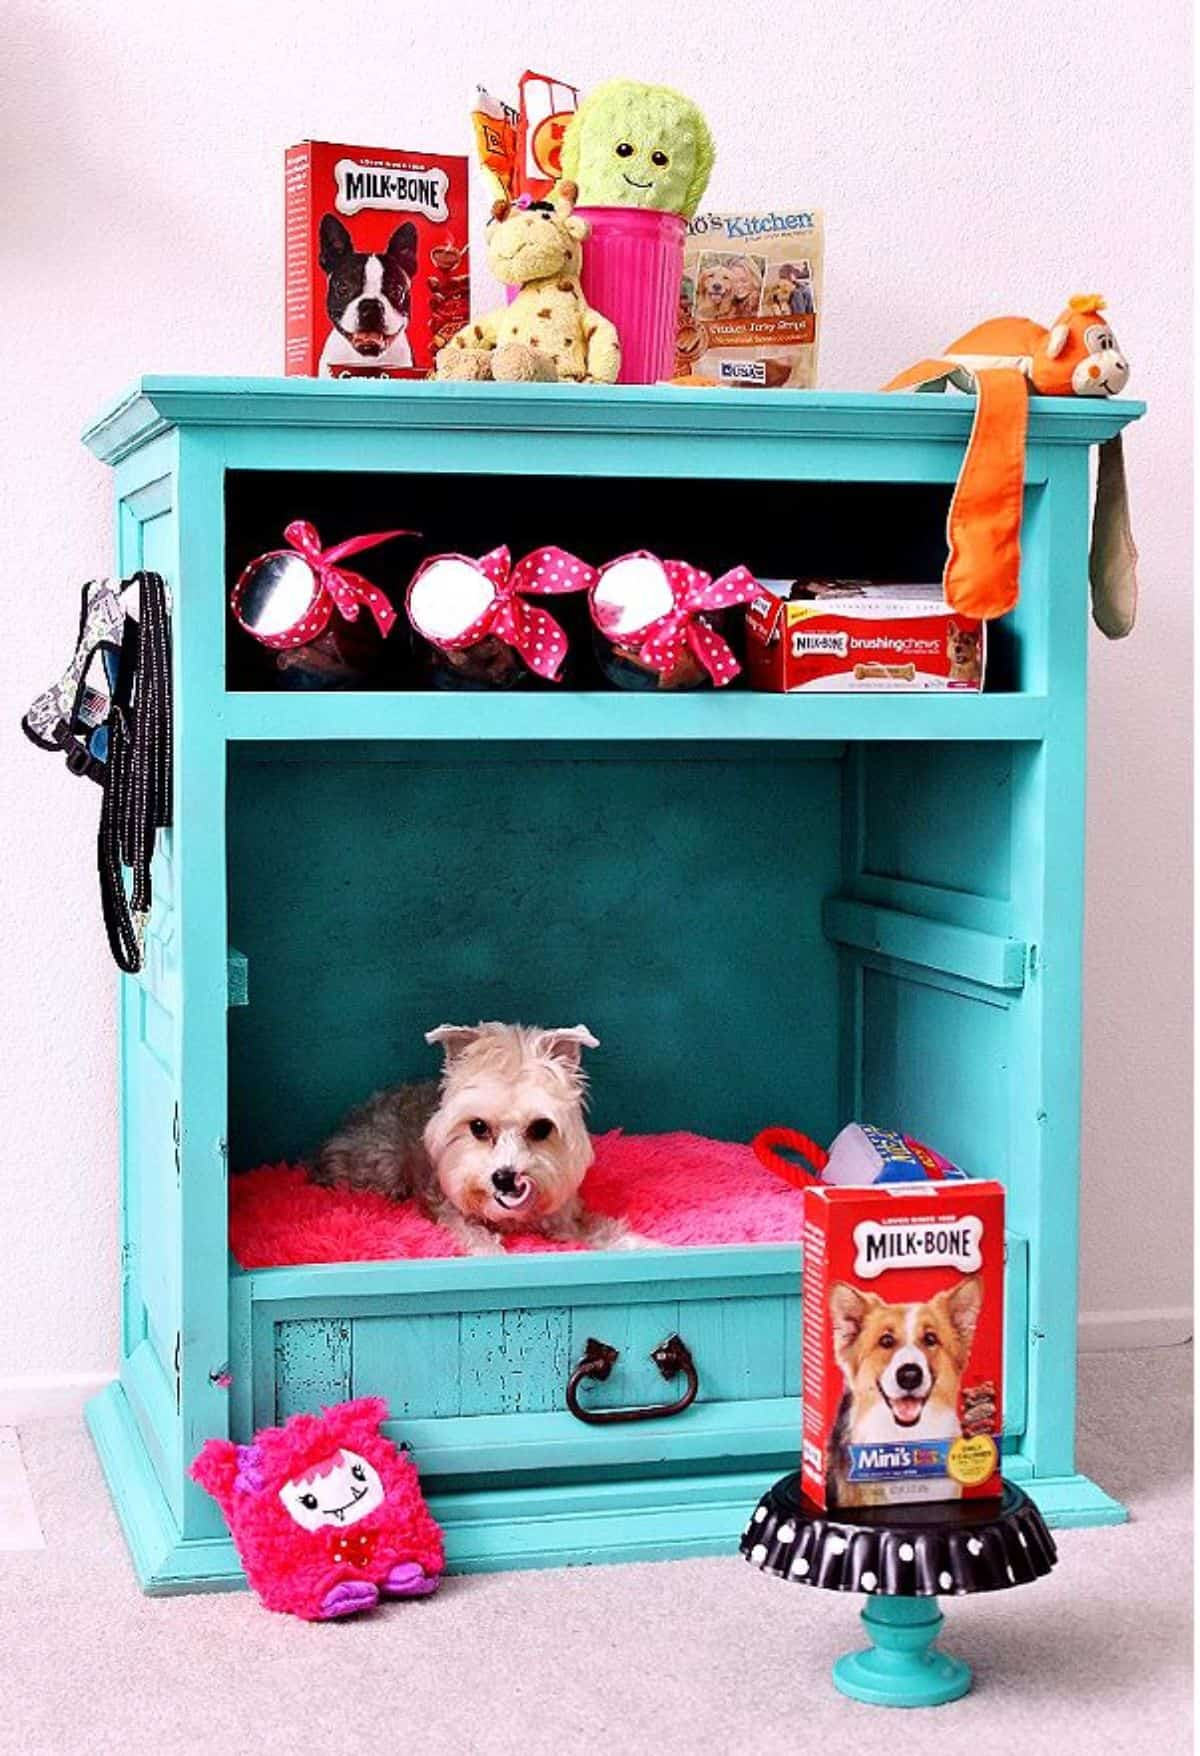 used-closet.-3 +80 Adorable Dog Bed Designs That Will Surprise You